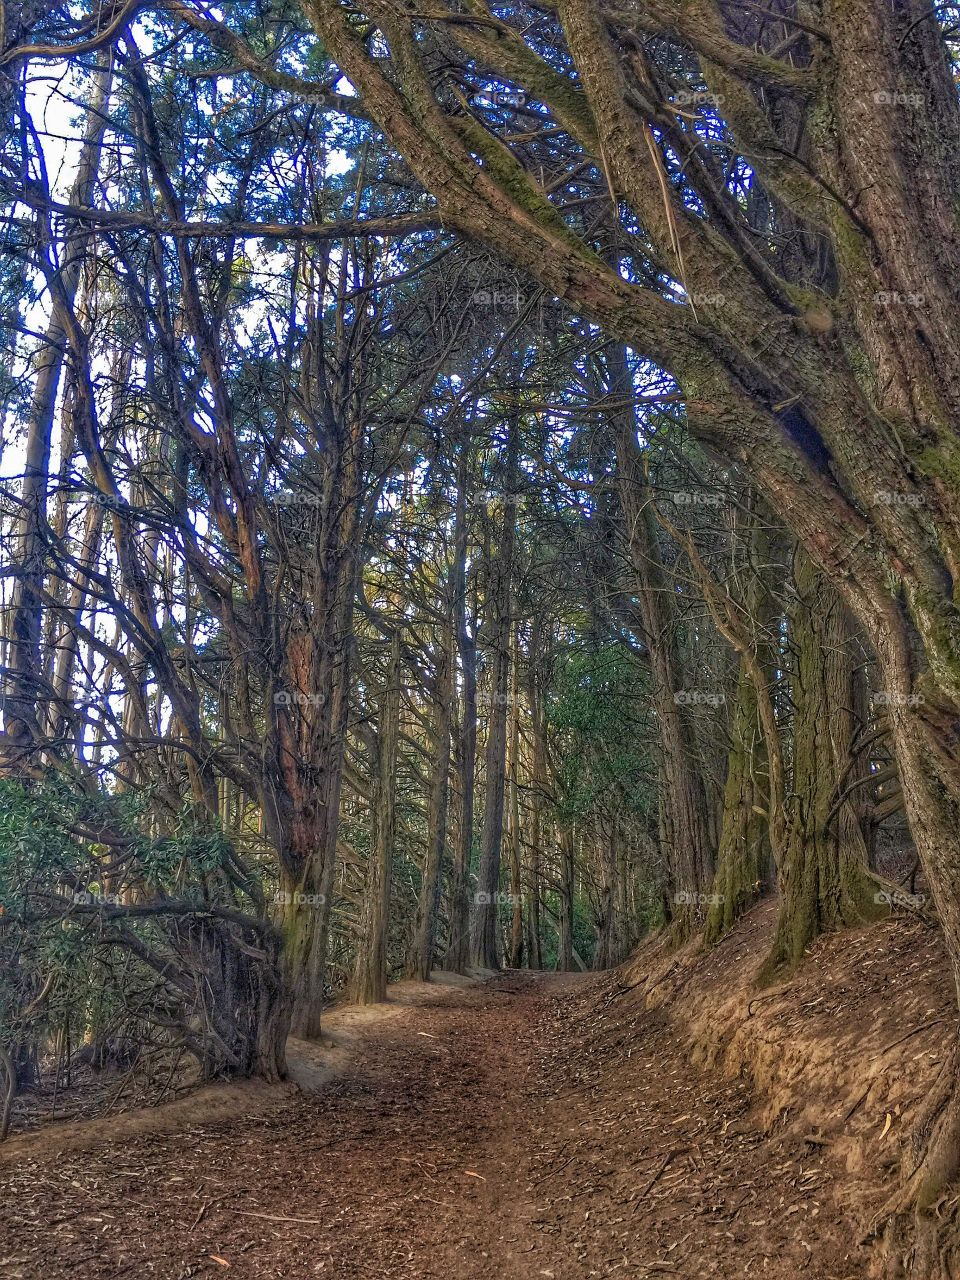 Serenity Trail . Hiking in the Redwood Regional Park, Oakland, Ca.